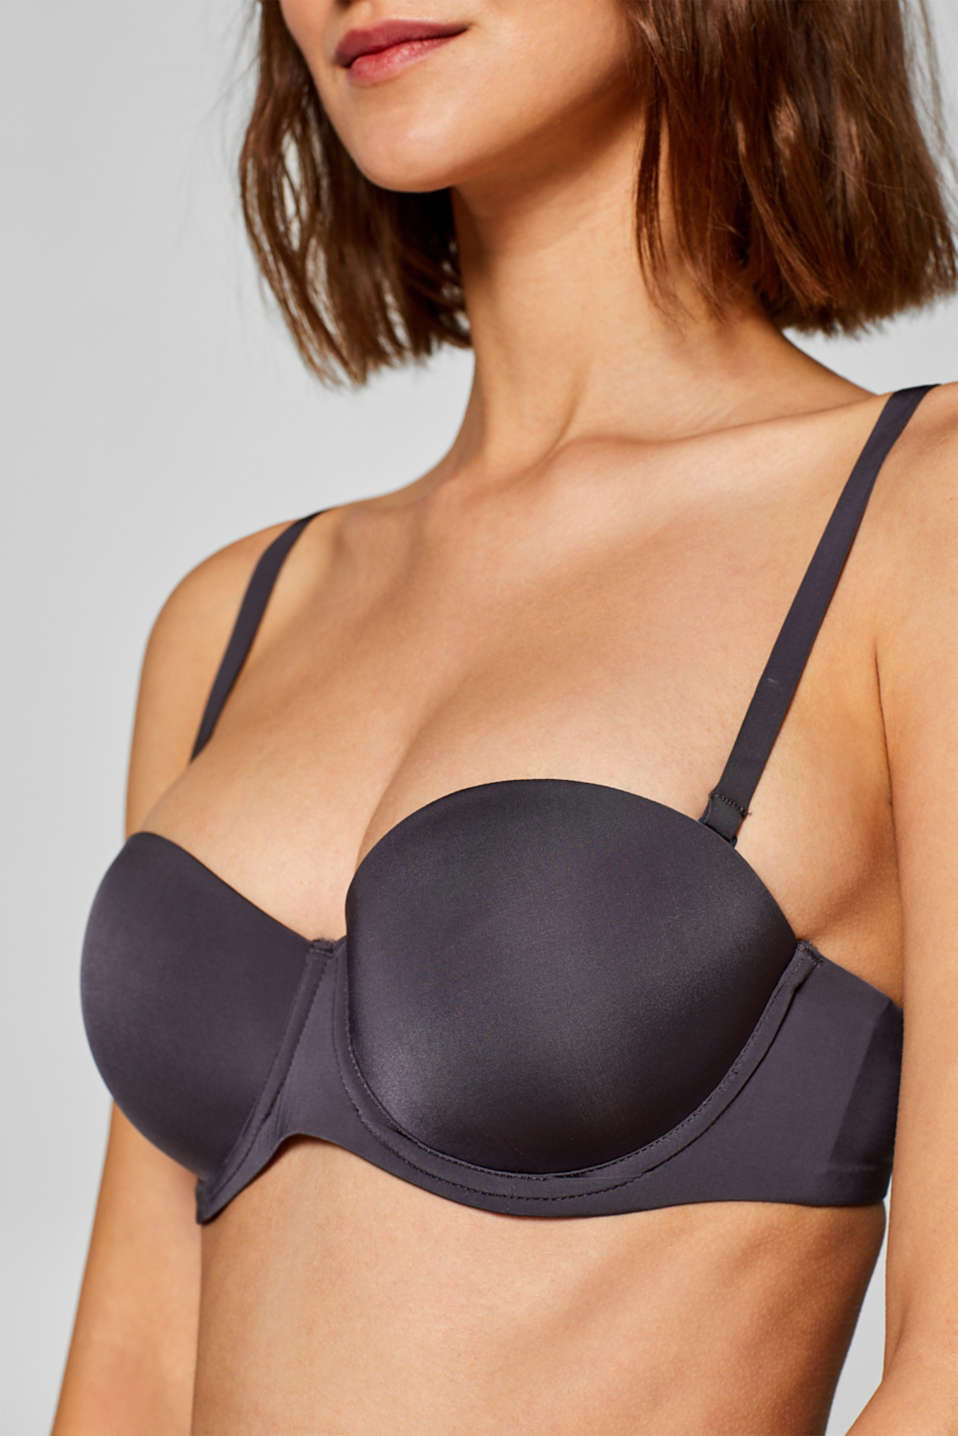 Padded underwire bra with detachable straps, DARK GREY, detail image number 2